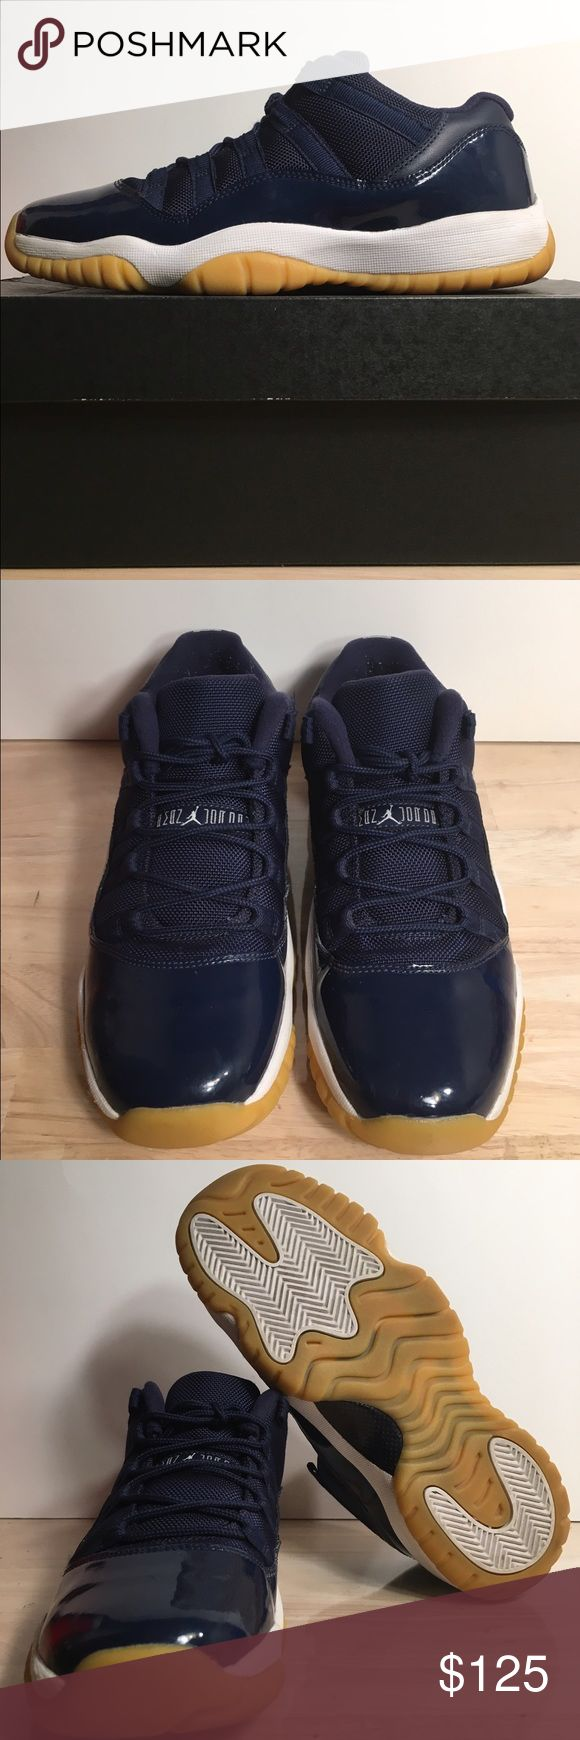 "Jordan Retro 11 ""Midnight Navy"" SIZE-7 youth, 8.5 women's CONDITION-7/10, creasing, original all Jordan Shoes Sneakers"